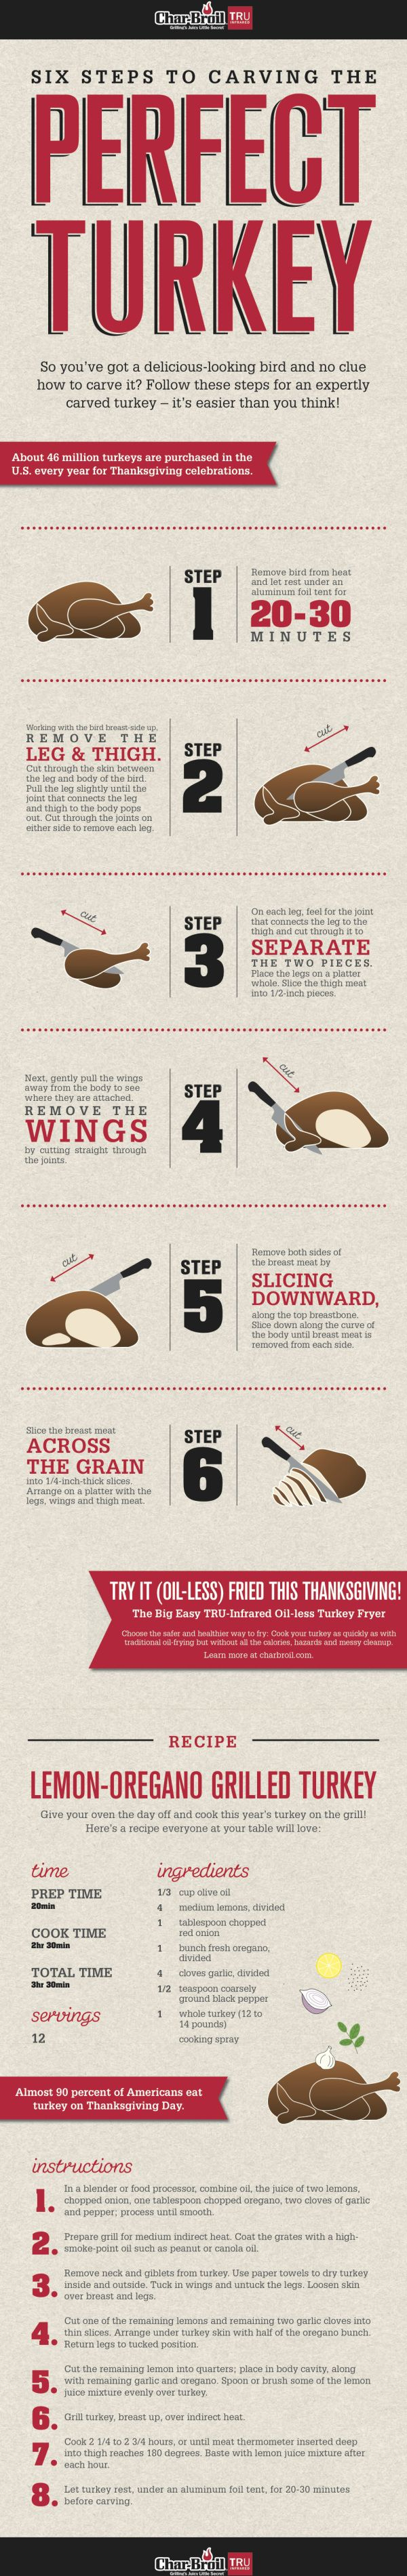 You've grilled the turkey, now you have to carve it! How to carve the perfect turkey. Happy Thanksgiving!